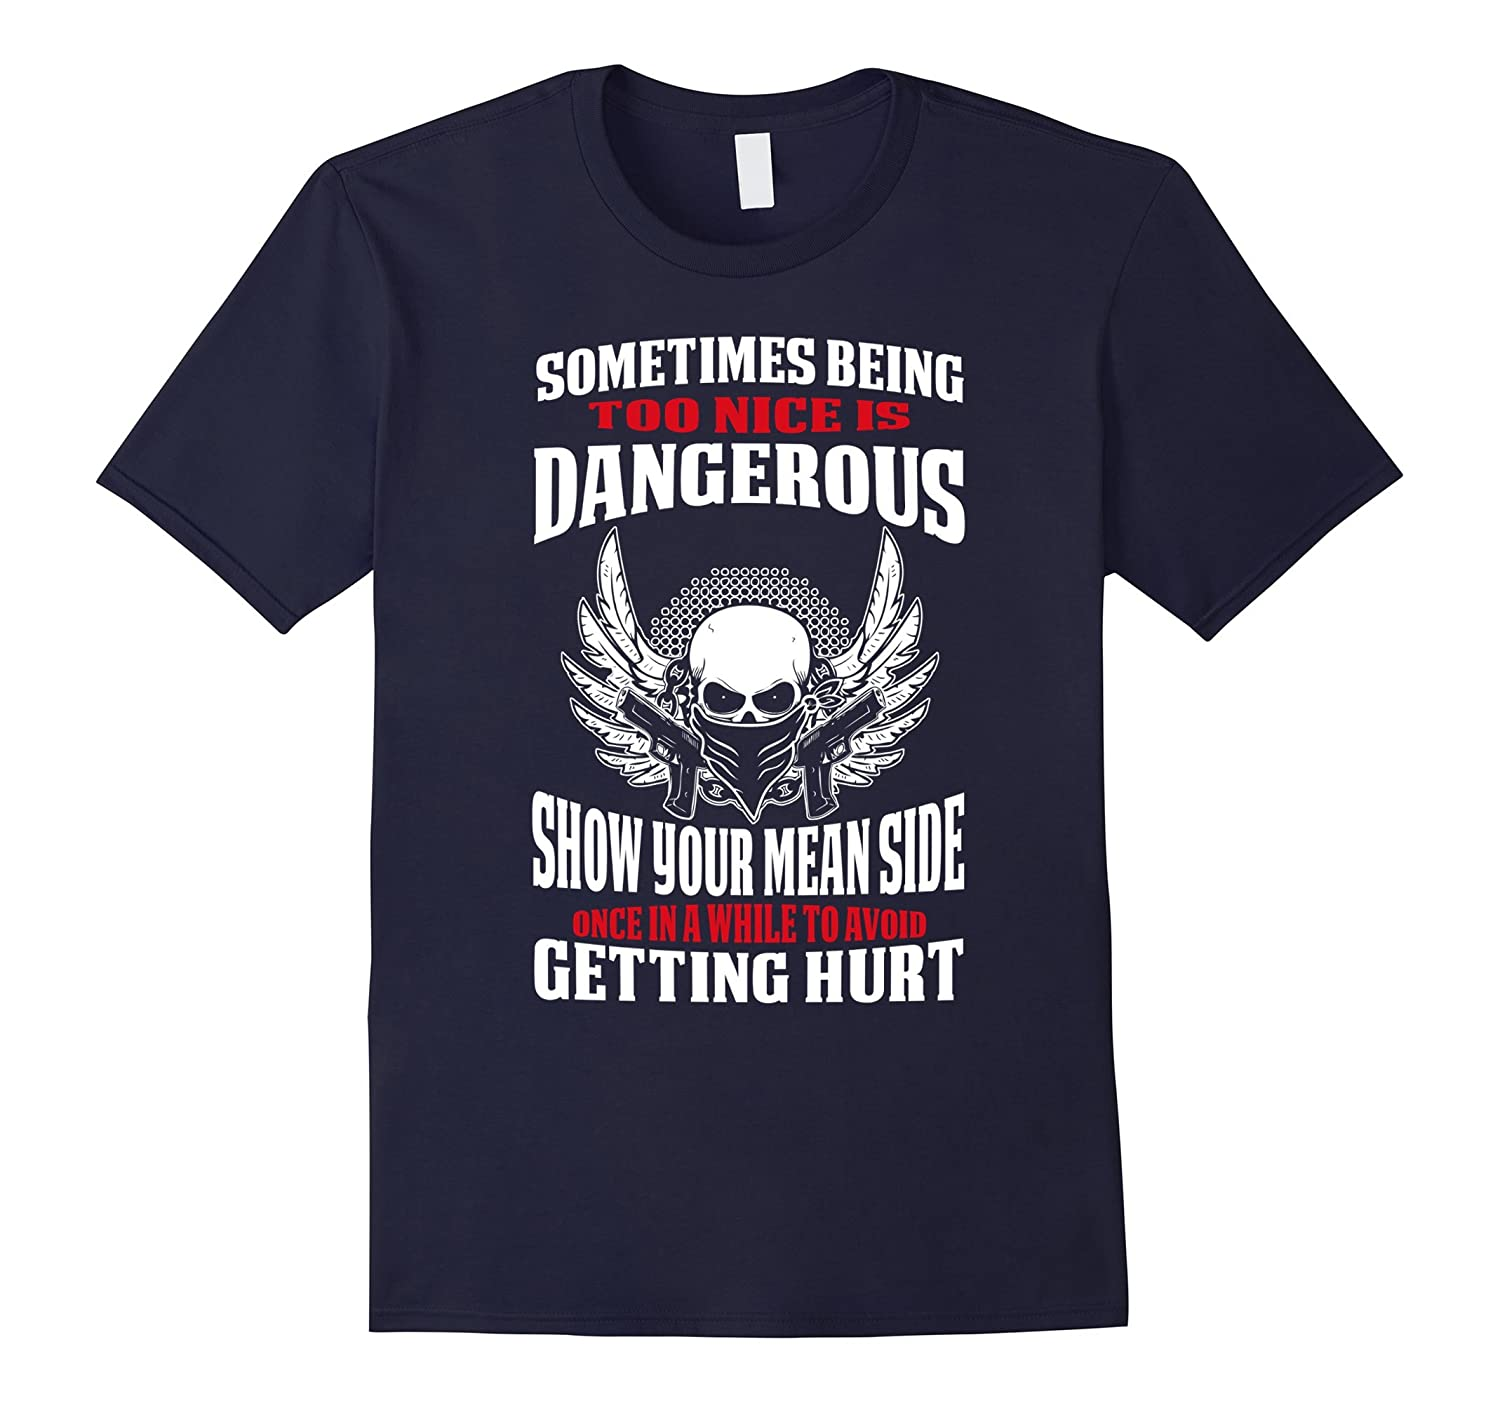 Being Too Nice Is Dangerous - Cool Dangerous Shirt-BN